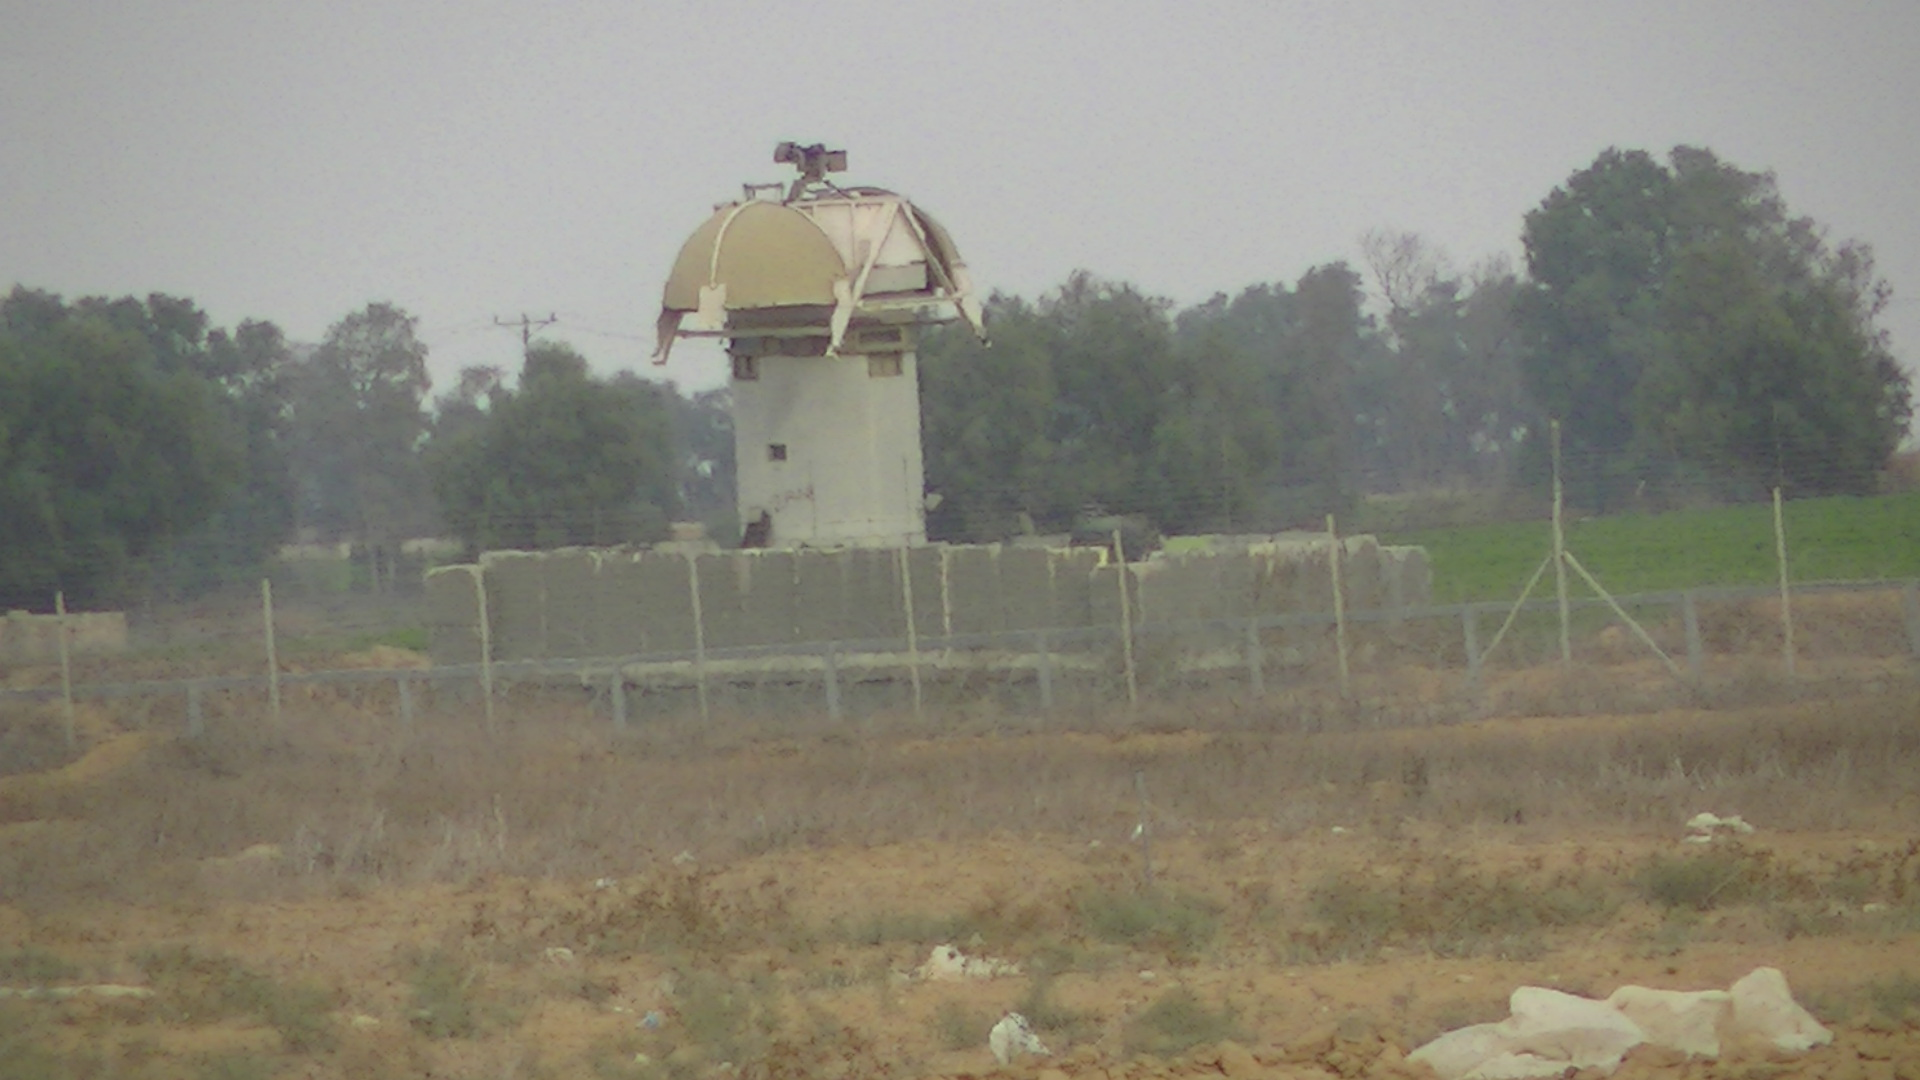 Surveillance tower in the buffer zone in Khuza'a, occupied Gaza Strip. Photo by Corporate Watch, November 2013